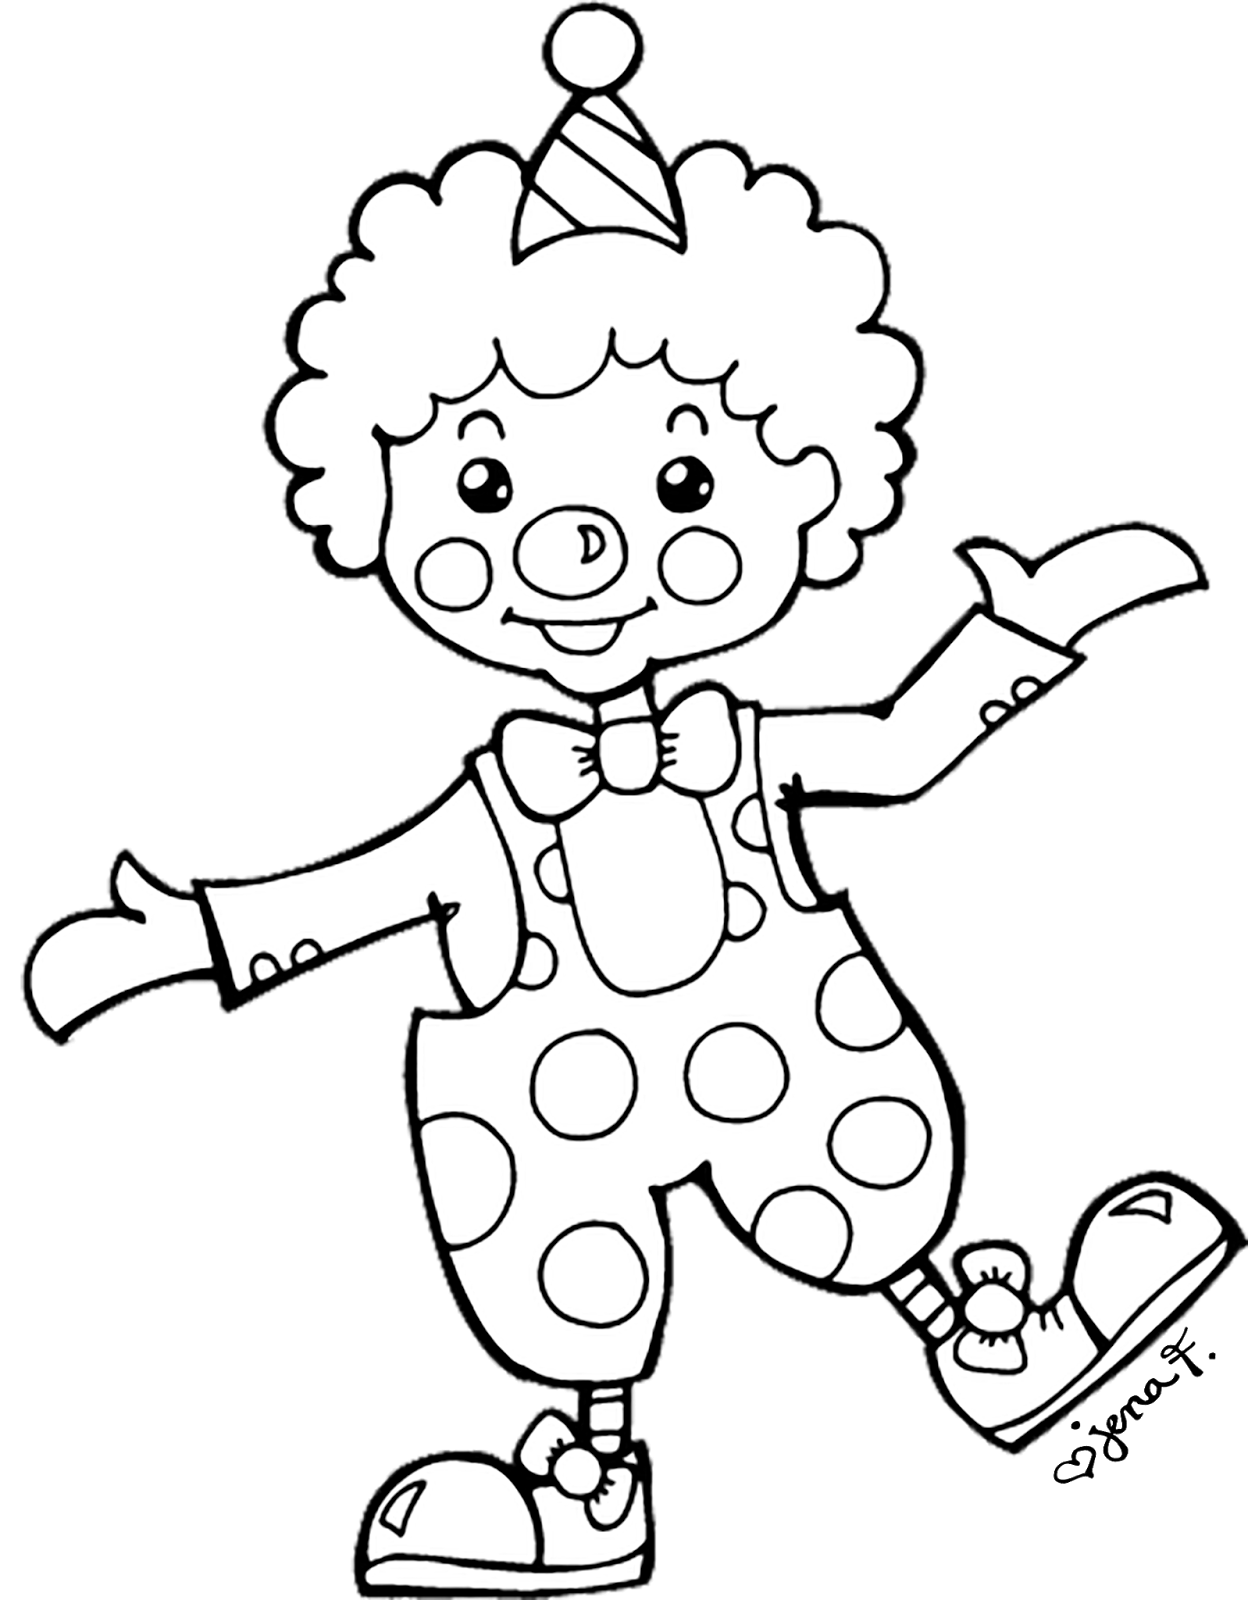 Simple drawing at getdrawings. Clown clipart graphic royalty free download